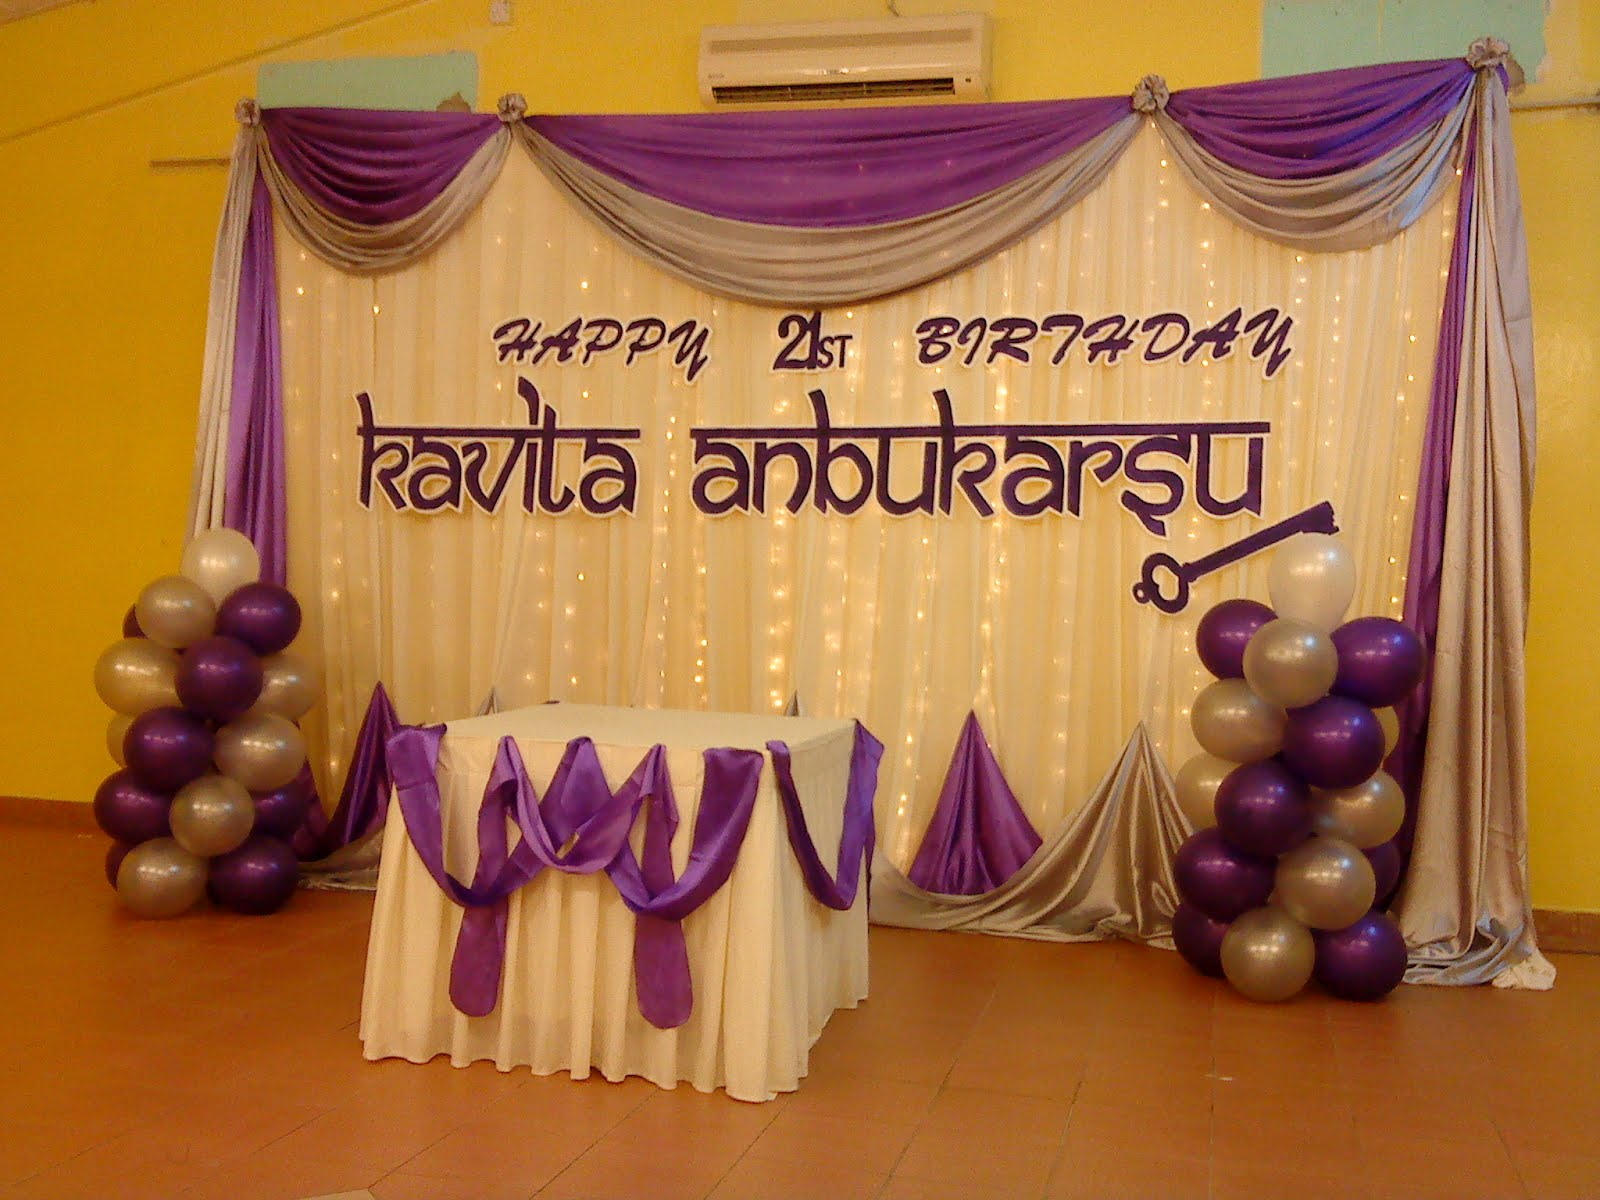 Raags management services 21st birthday deco purple white for 21st bday decoration ideas